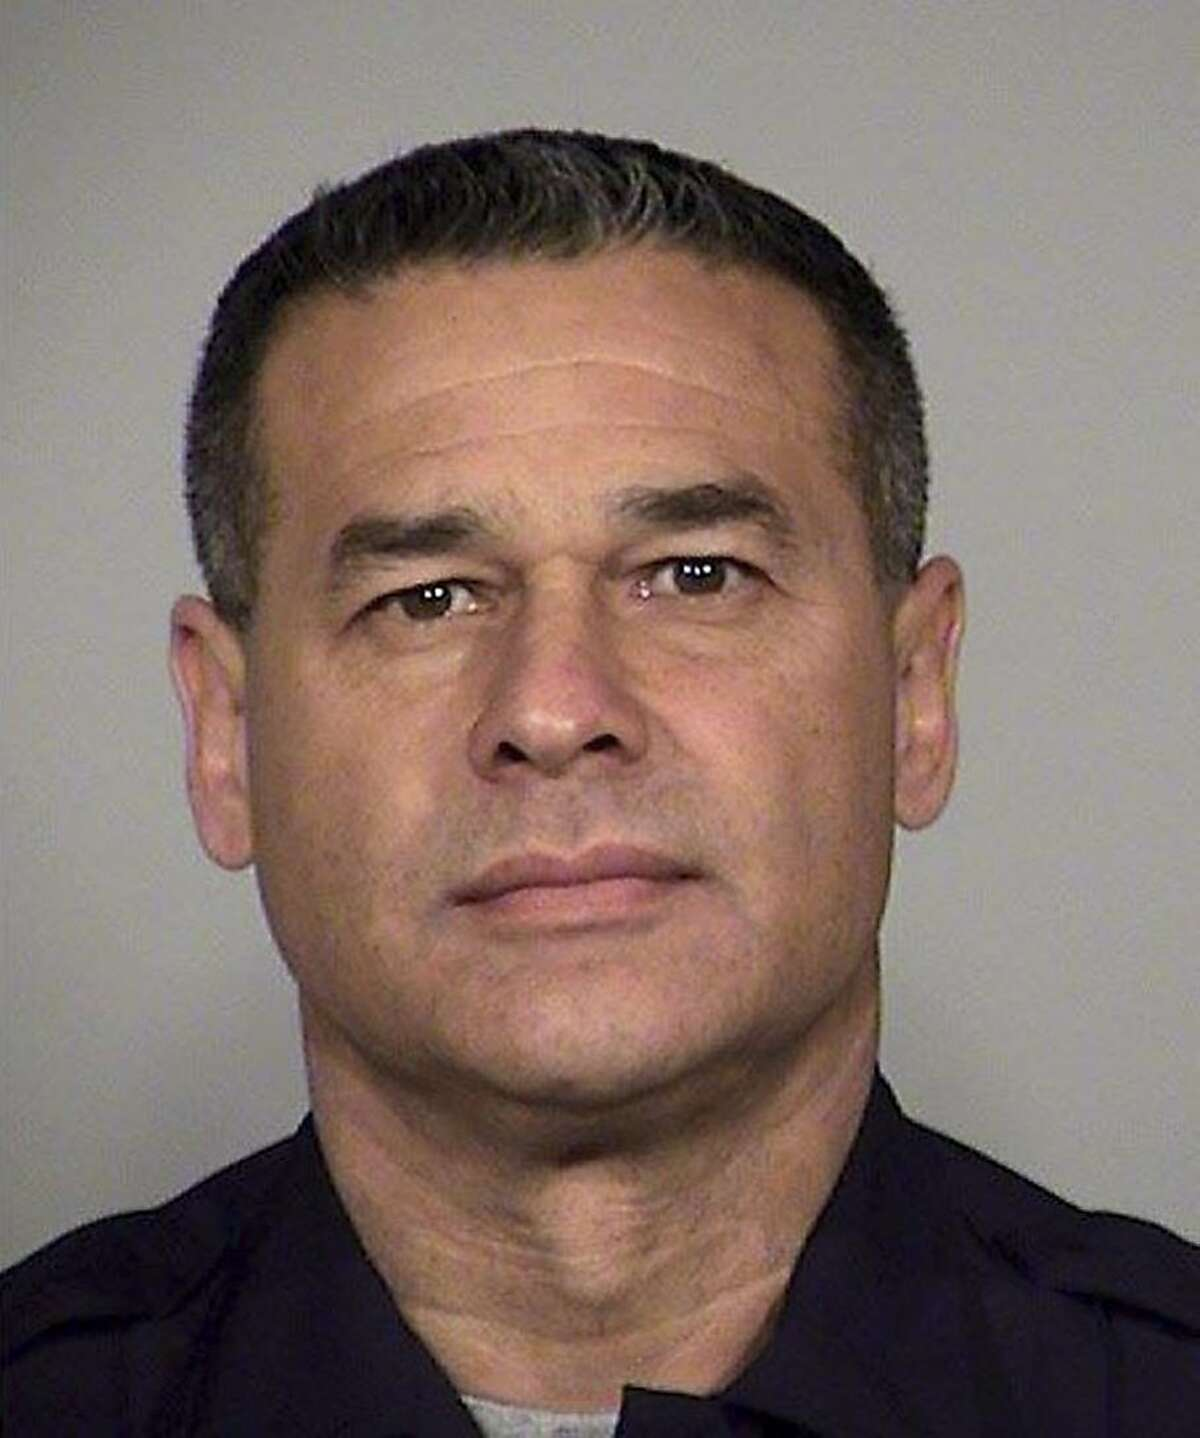 In an undated handout photo, Det. Benjamin Marconi of the San Antonio police department. Det. Marconi, who was shot to death while sitting in a squad car, was apparently killed just for being on the force, the city's police chief said on Monday, a day after the detective and three officers were shot in separate episodes around the country.